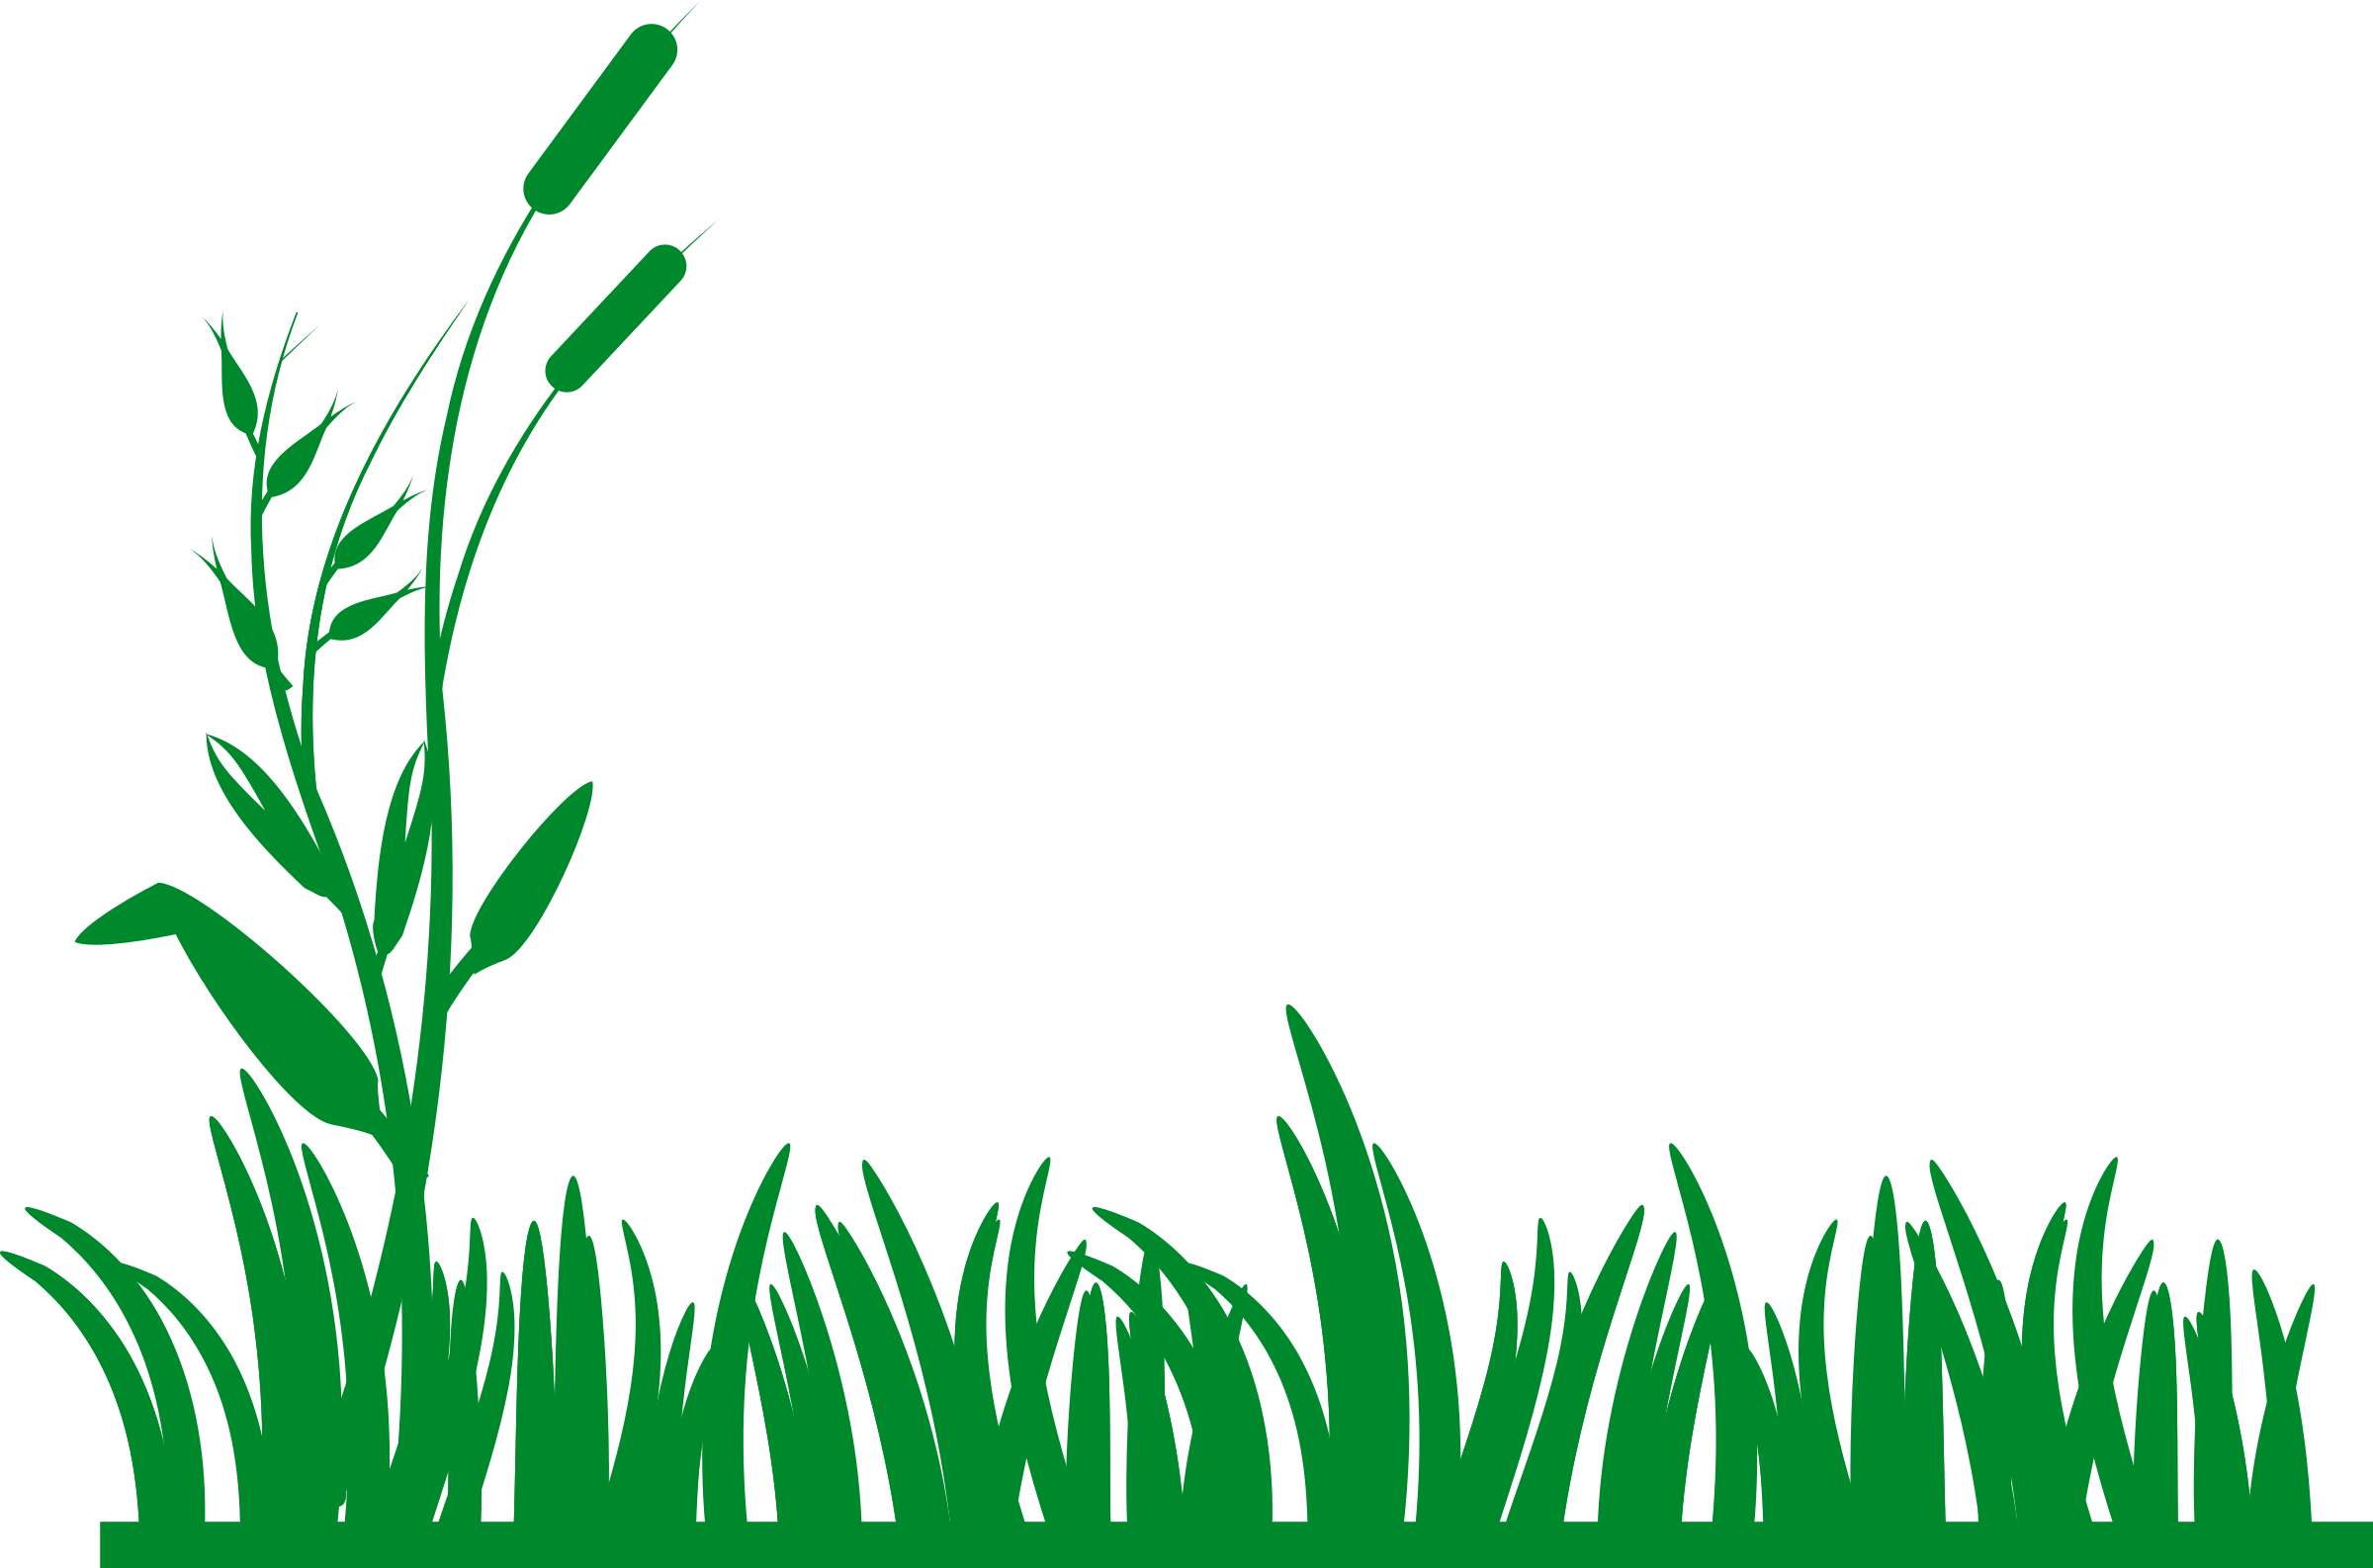 grass background by @rg1024, A grass background silhouette.